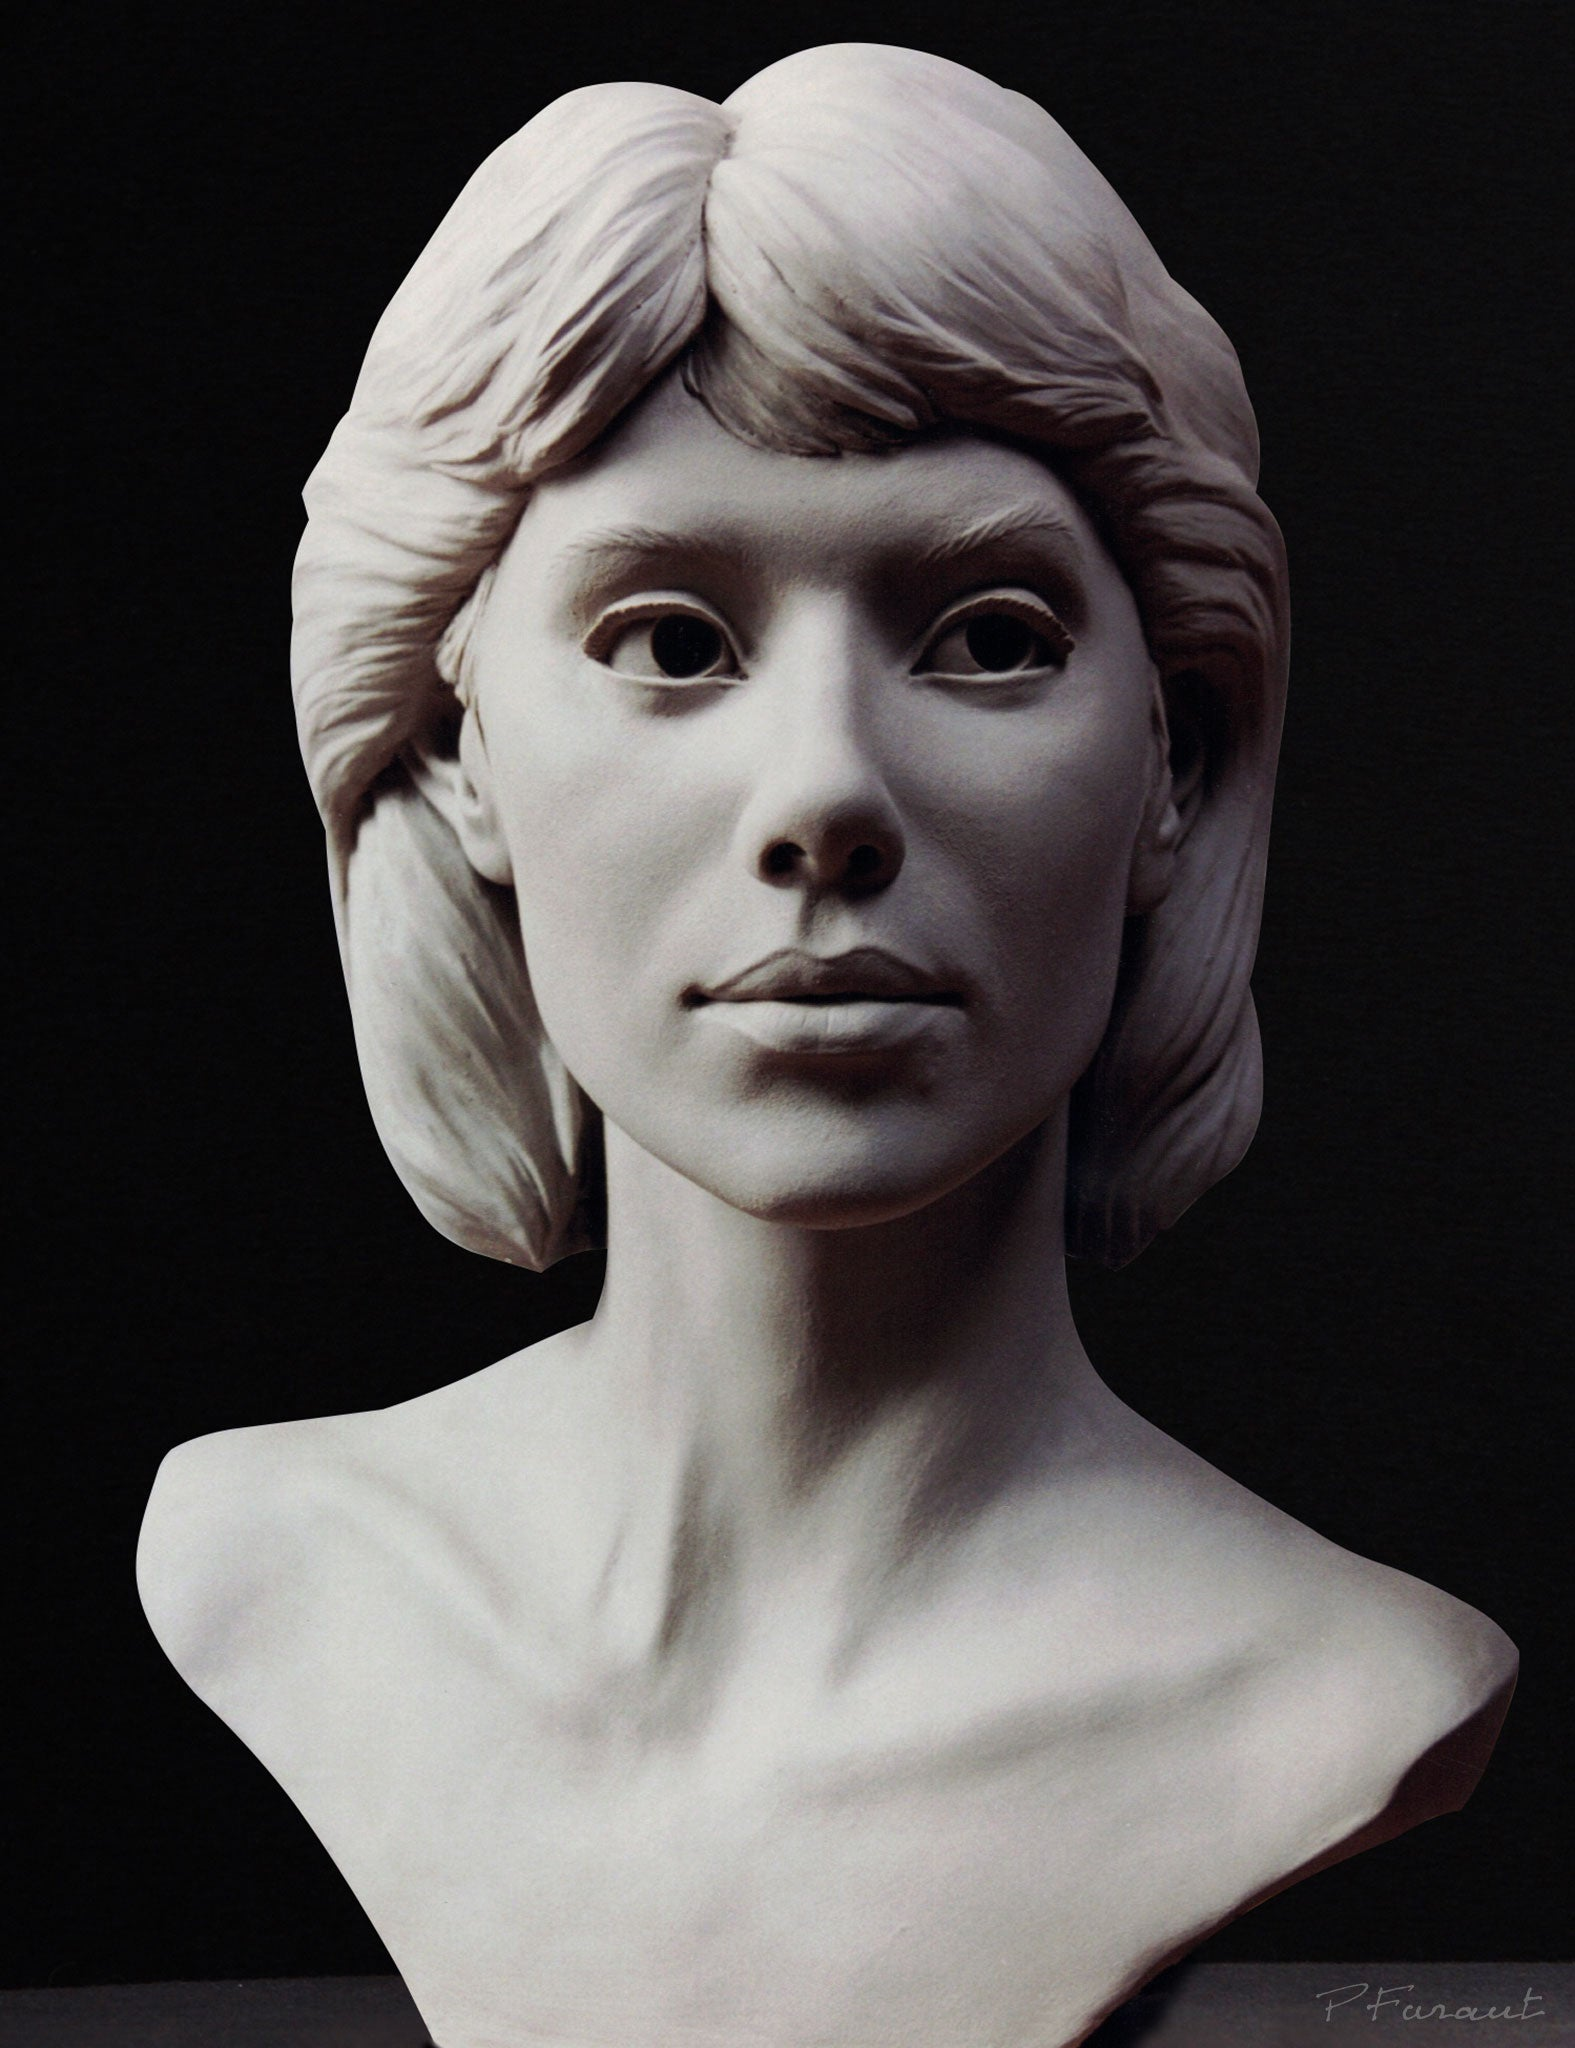 Clay portrait of the artist's wife Charisse by Philippe Faraut